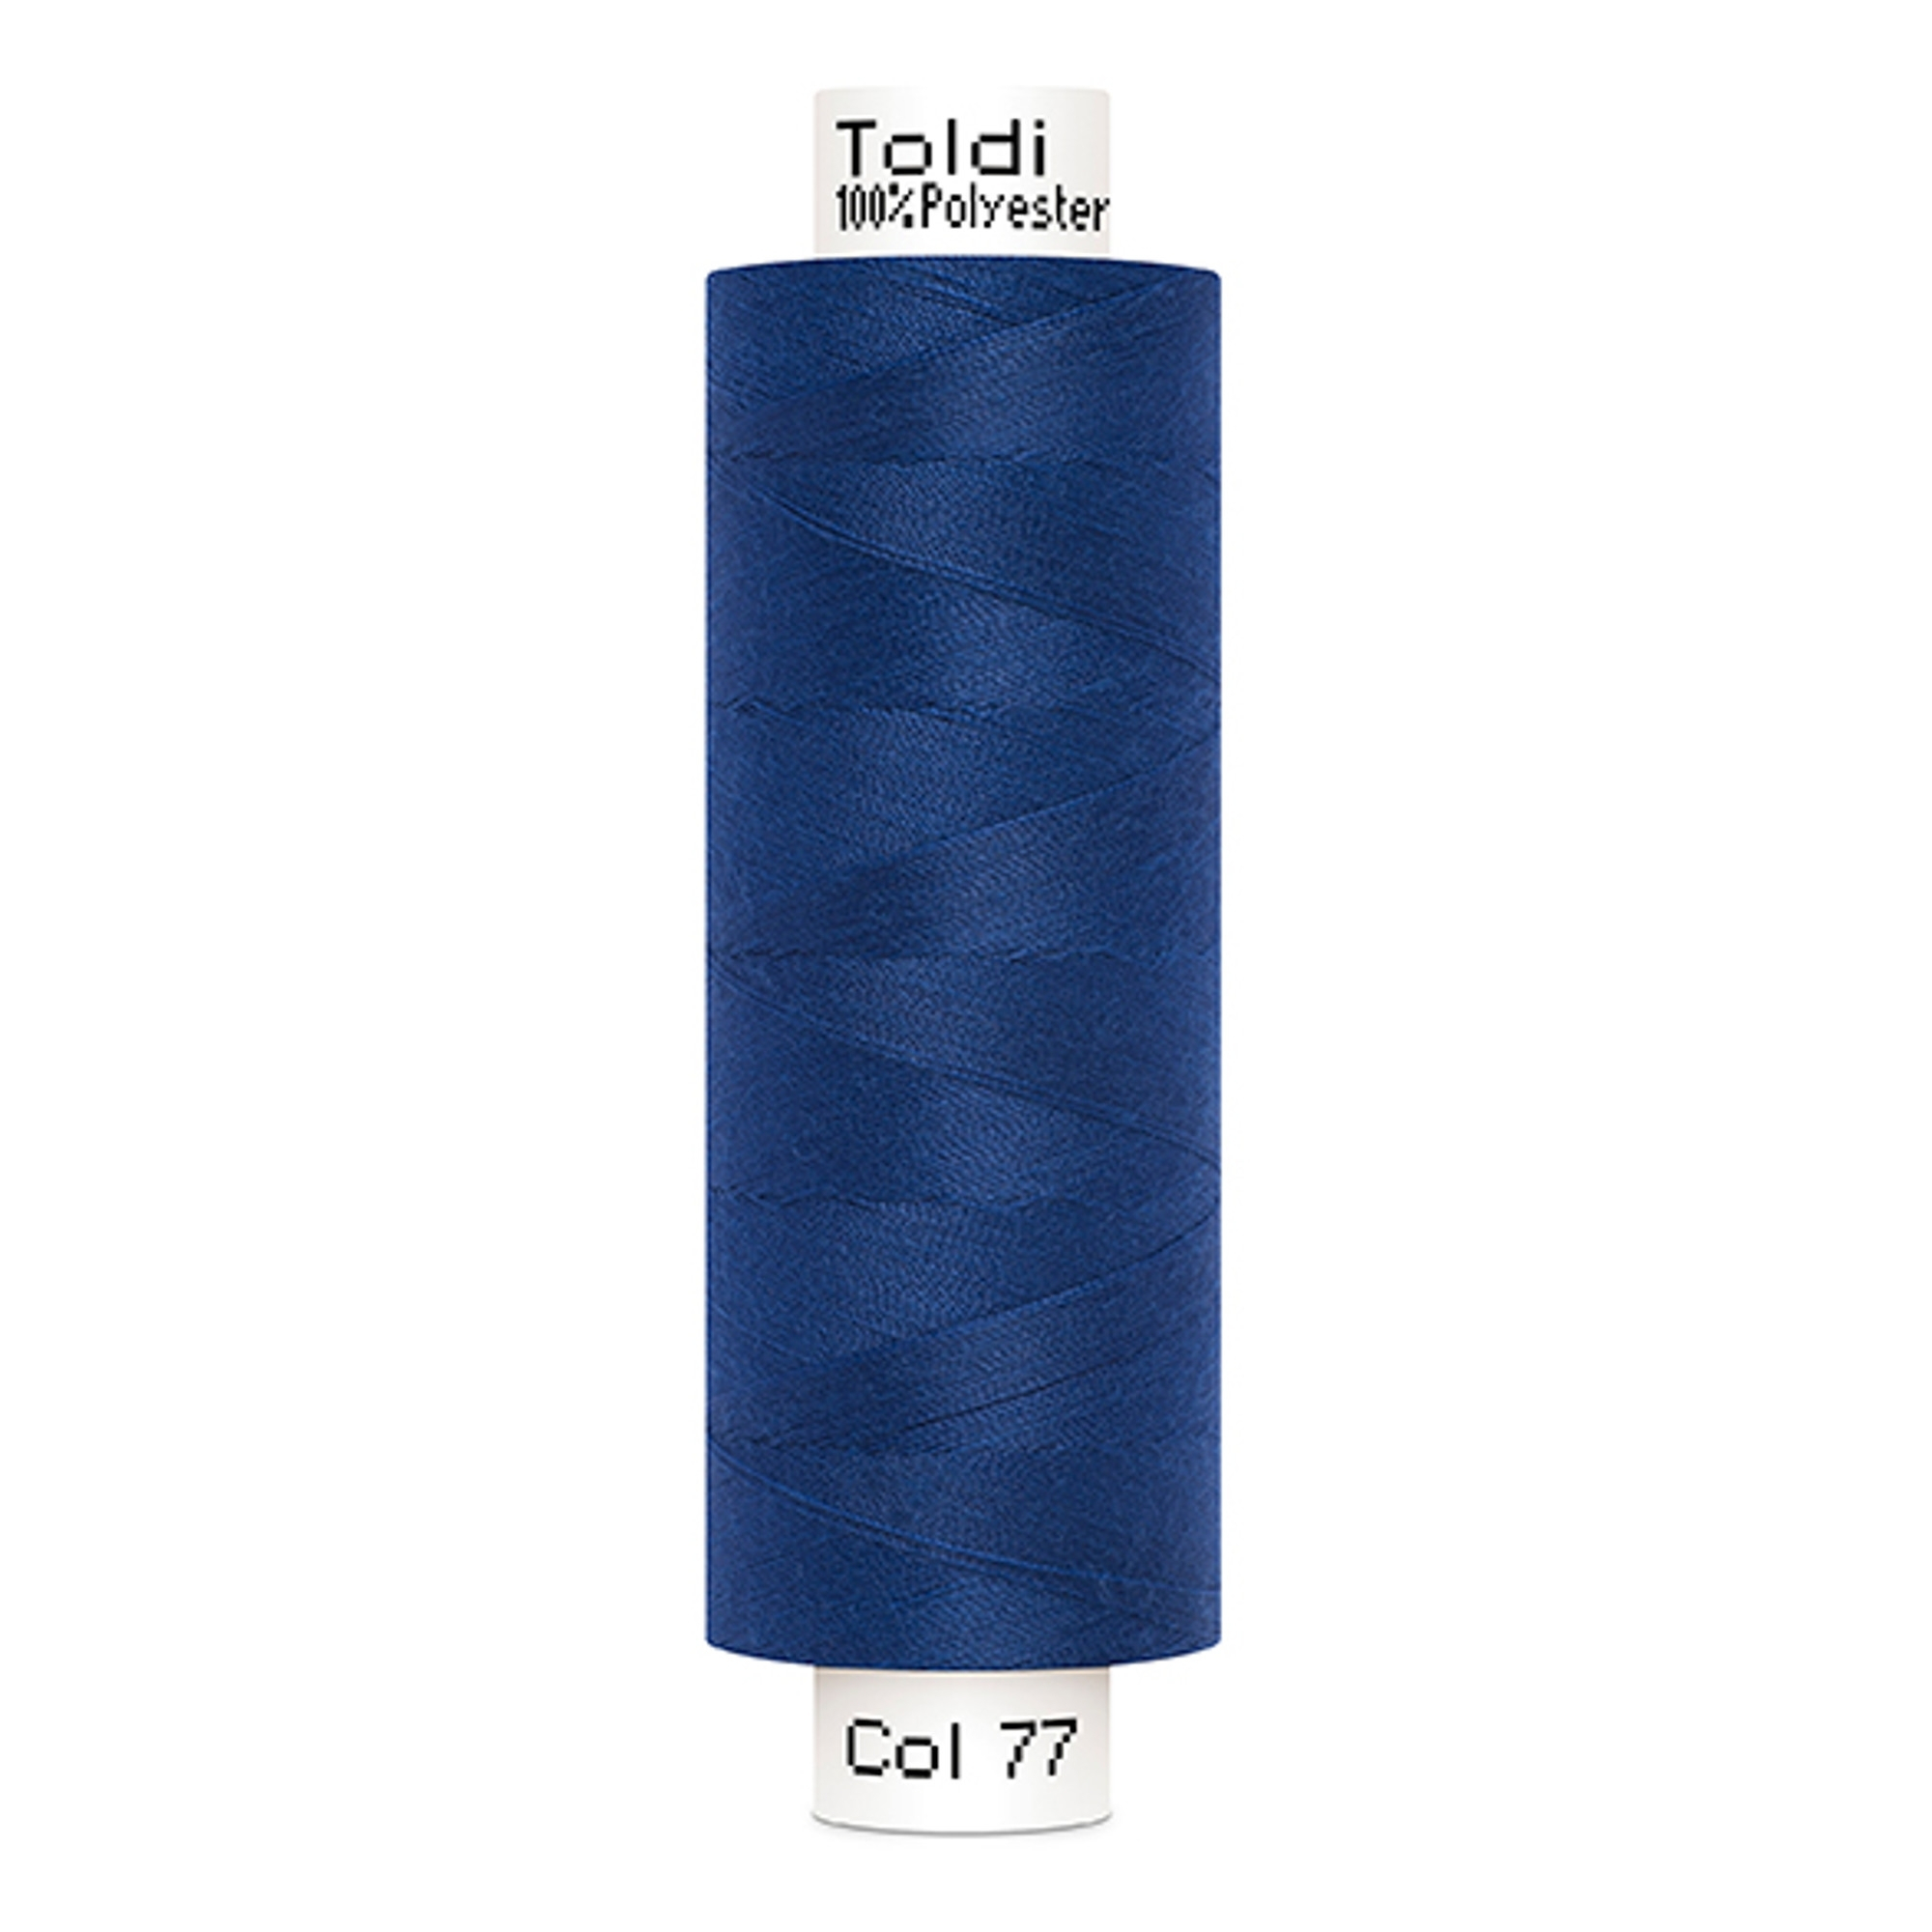 Gütermann Toldi Sewing Thread, 500 m, blue | 707589-77 | blau